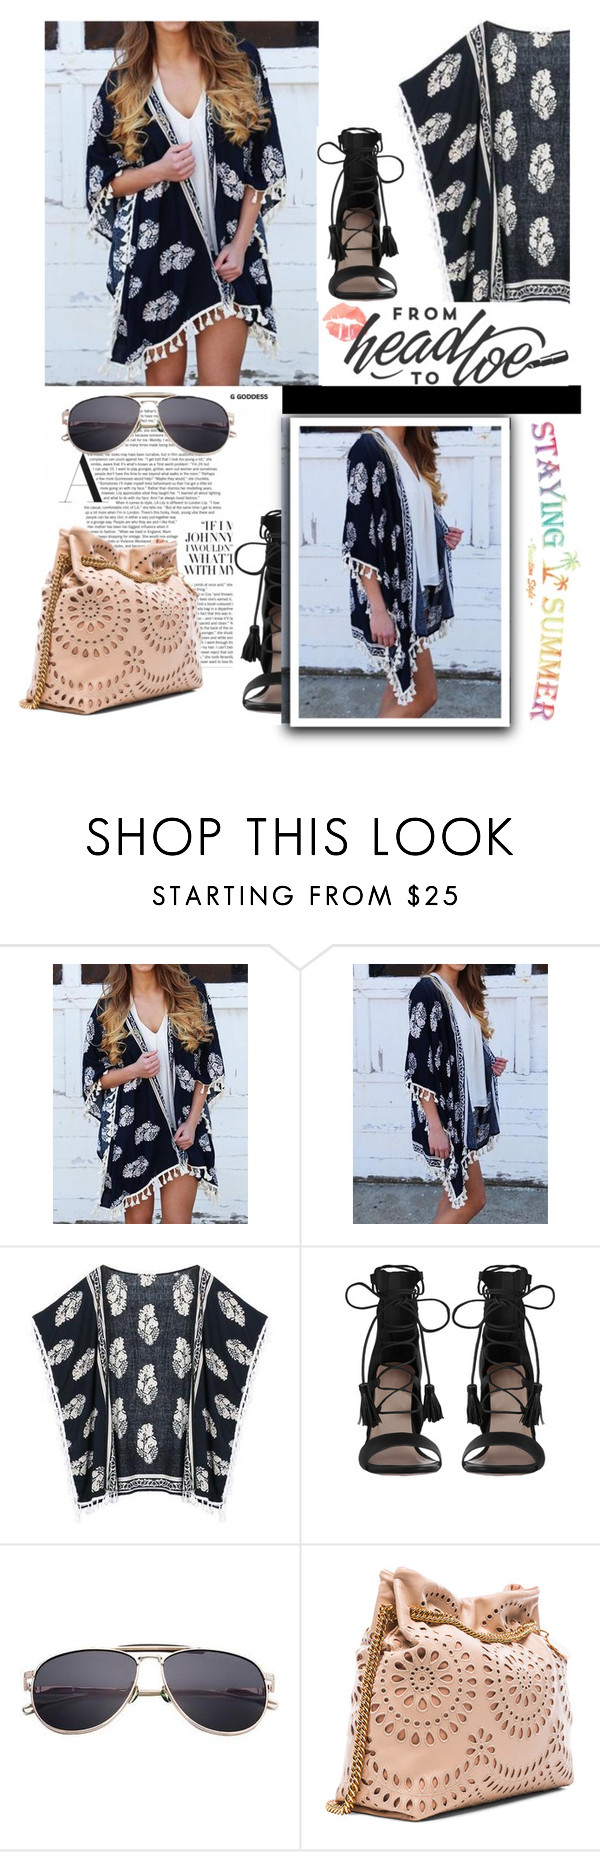 """""""stayingsummer 14/10"""" by ajla-344 ❤ liked on Polyvore featuring Zimmermann and STELLA McCARTNEY"""